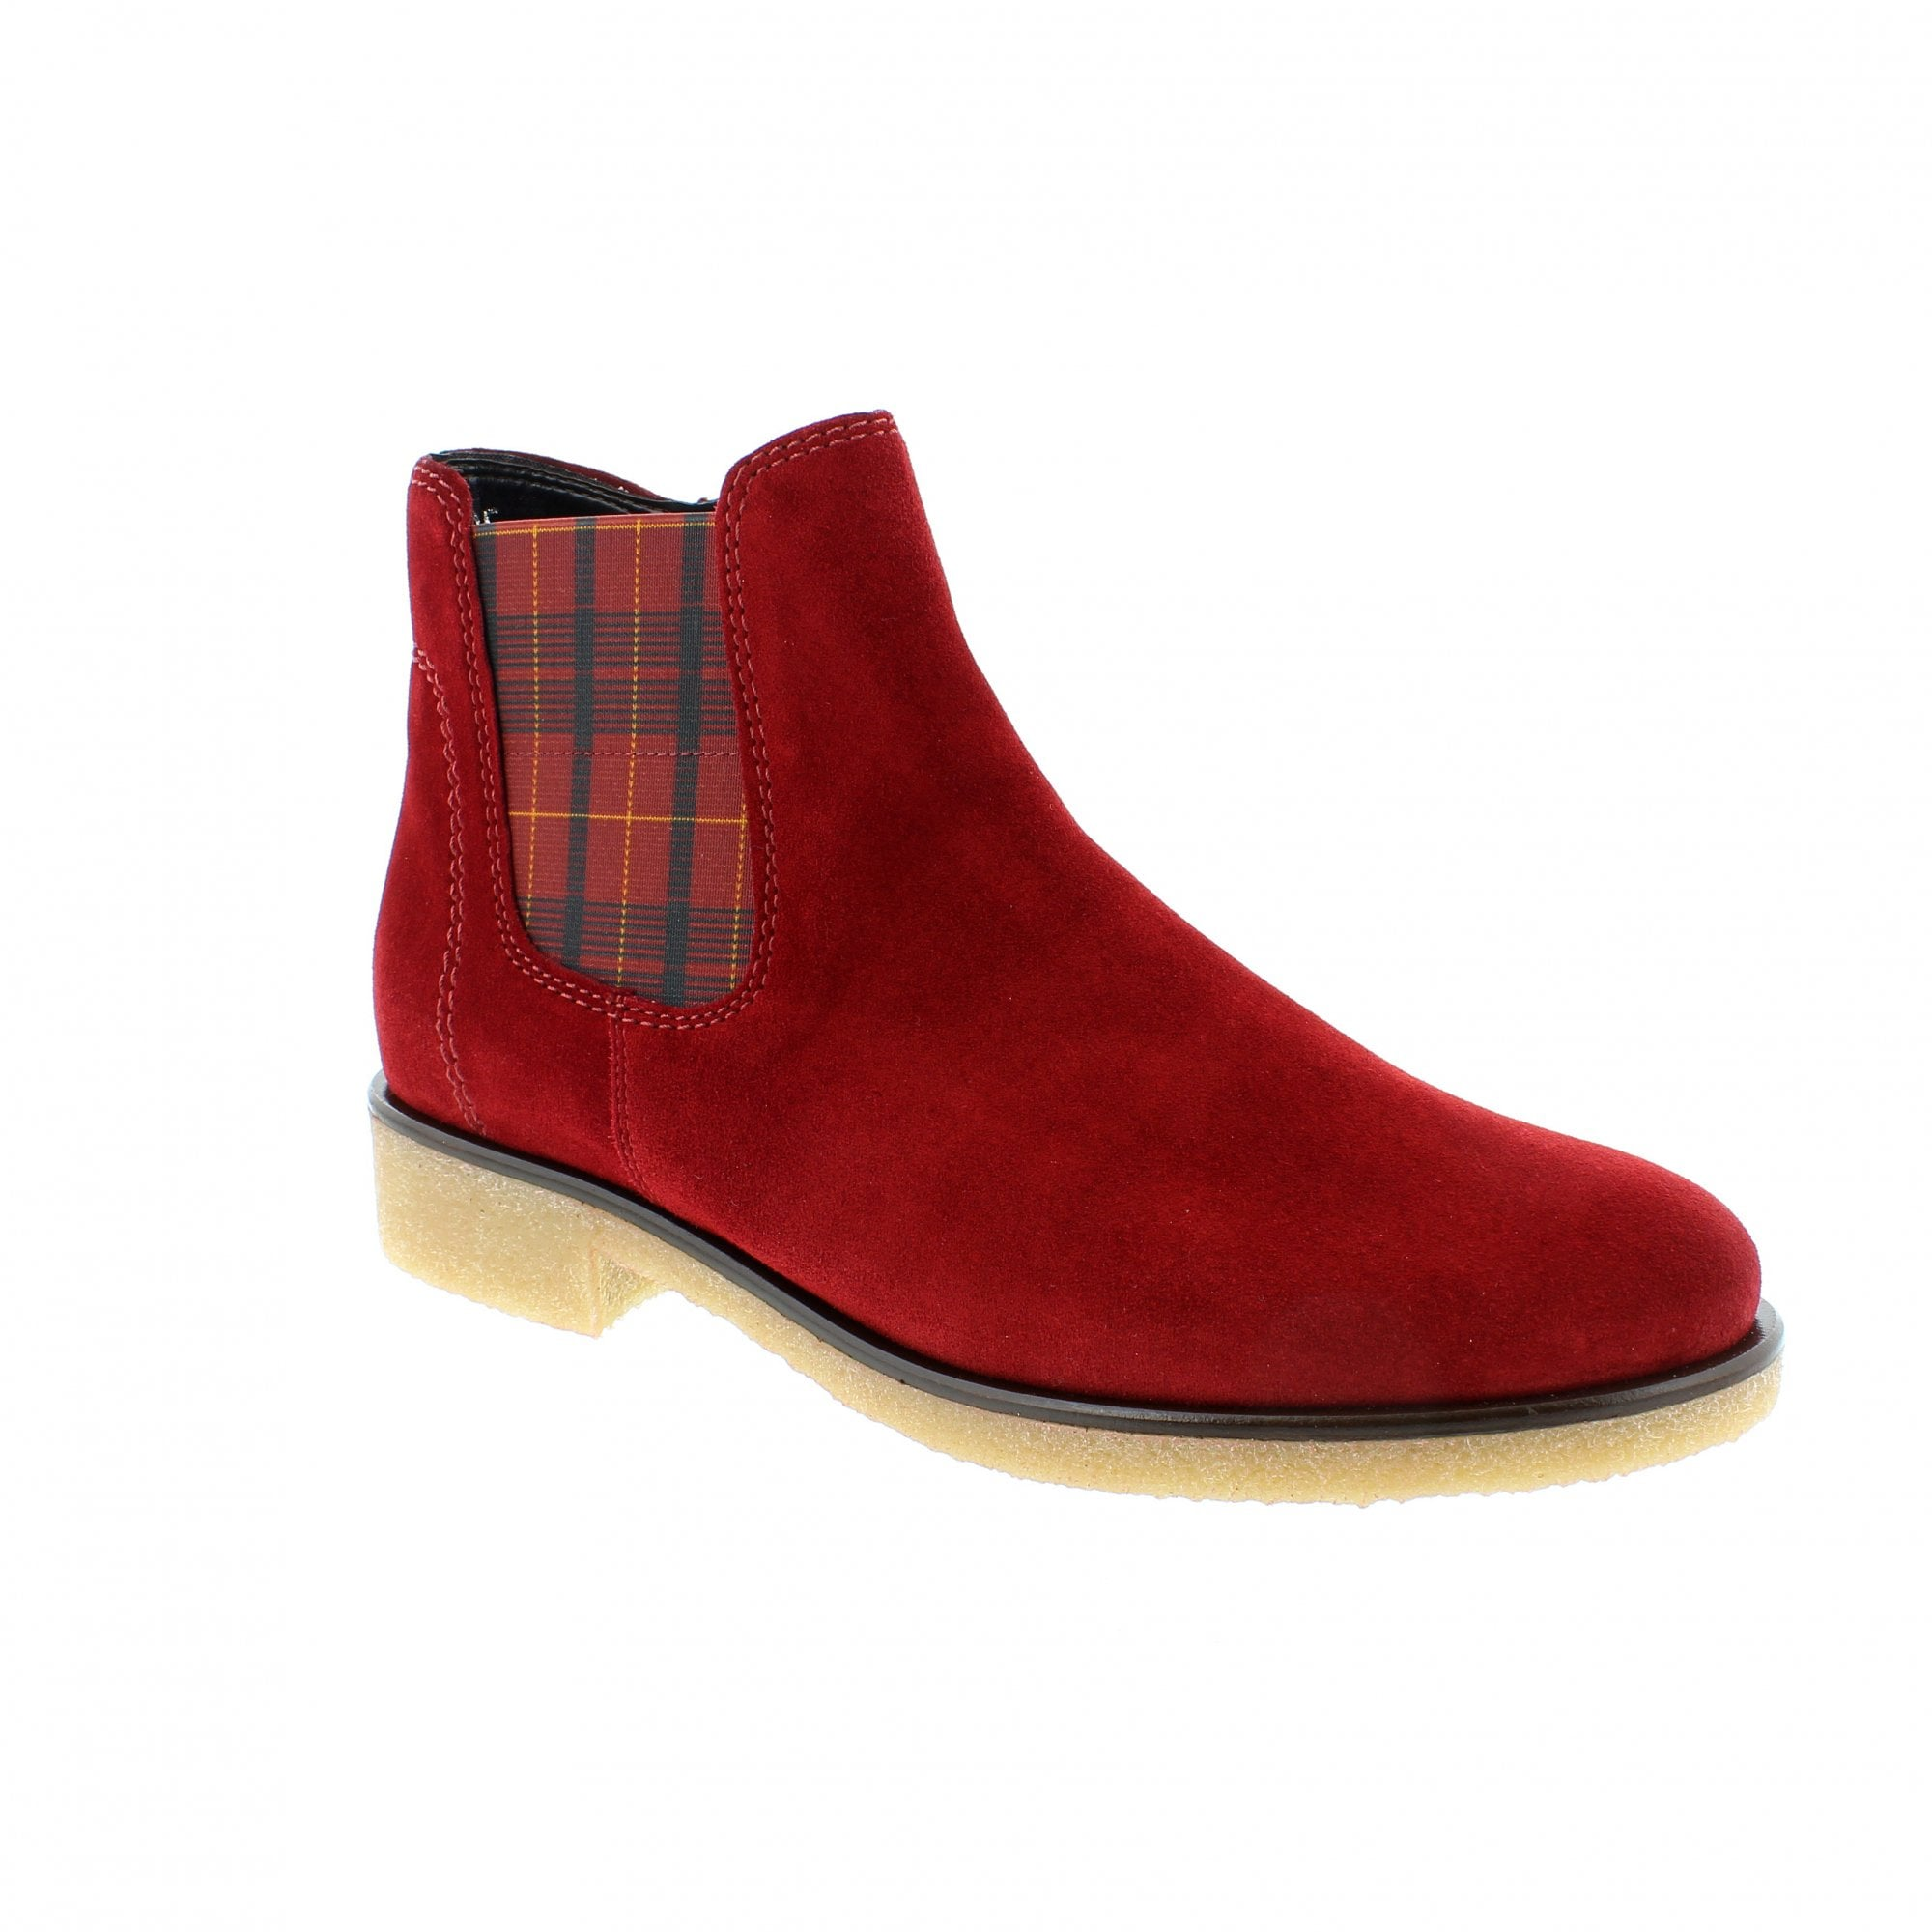 Gabor Maeve Red Suede Womens Chelsea